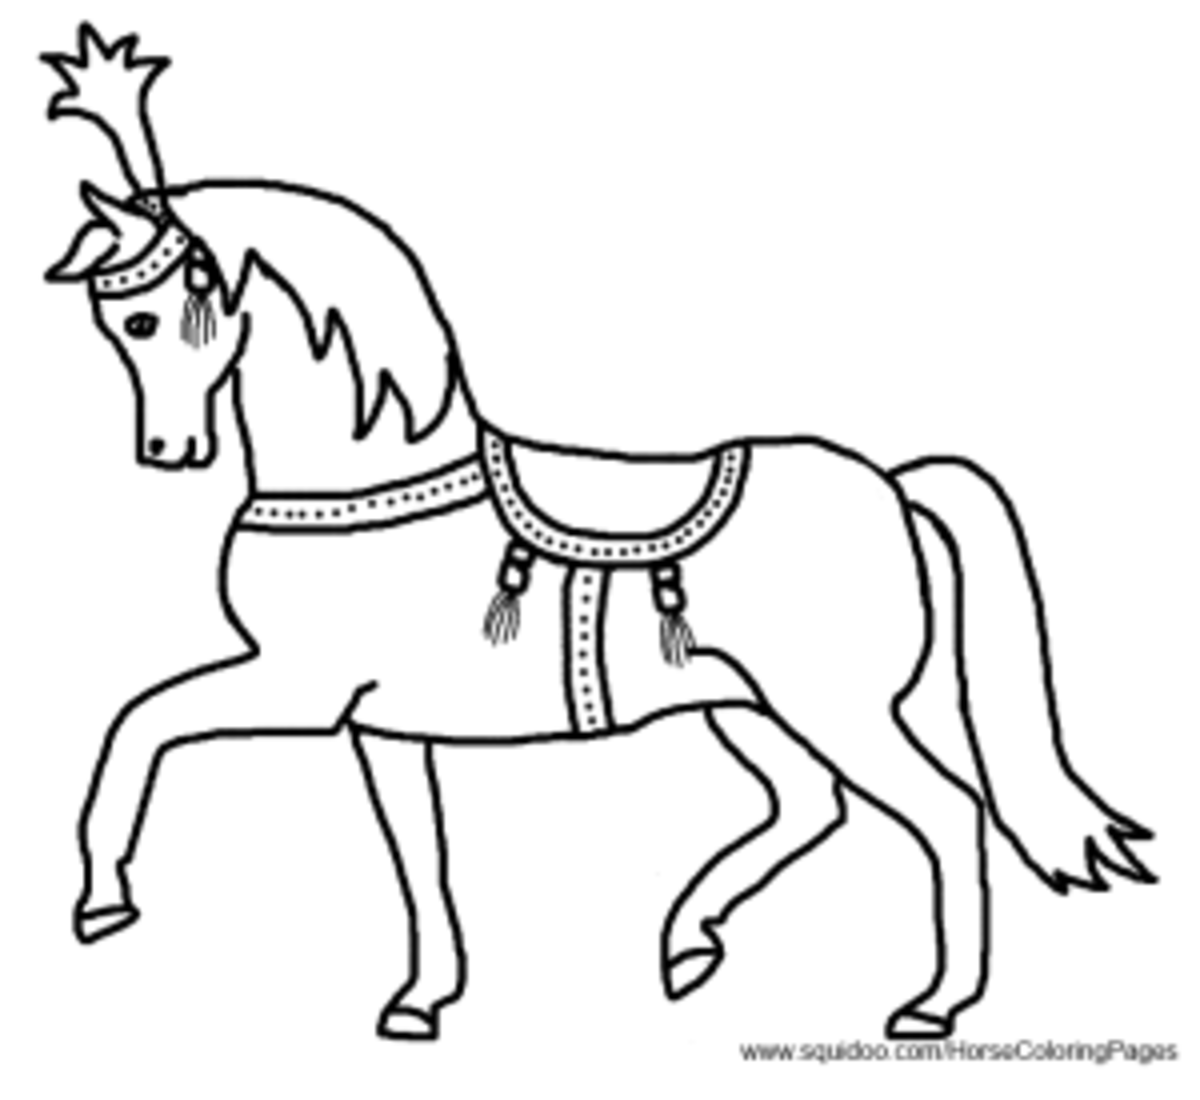 circus horses coloring pages - horse coloring pages